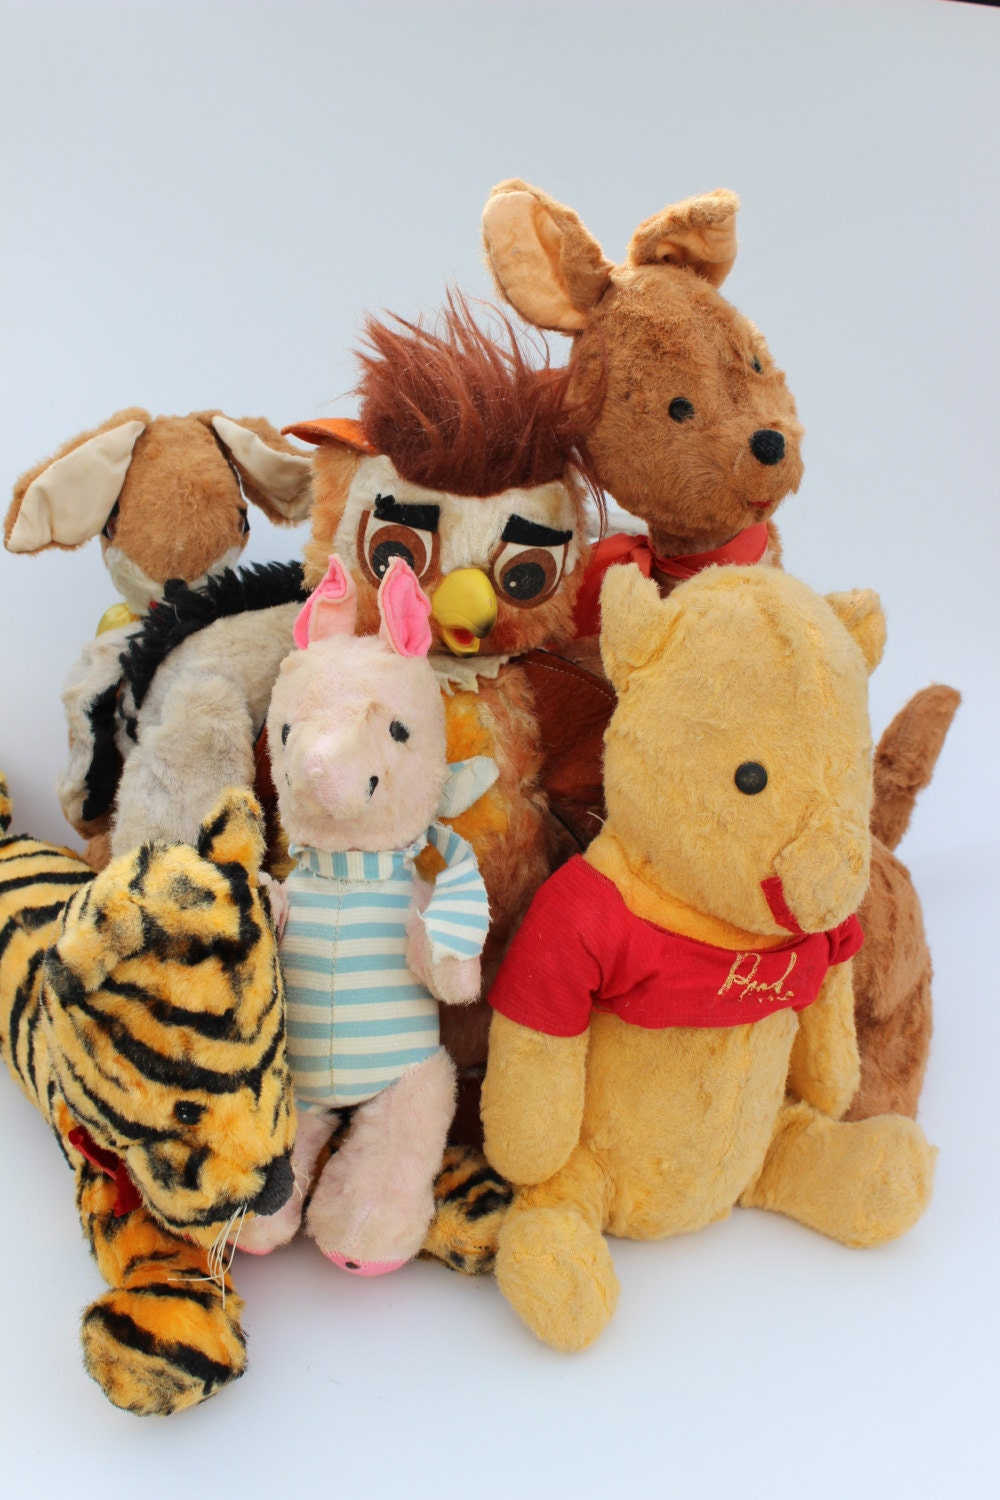 Winnie The Pooh Toys : Vintage winnie the pooh toy doll collection rabbit roo kanga